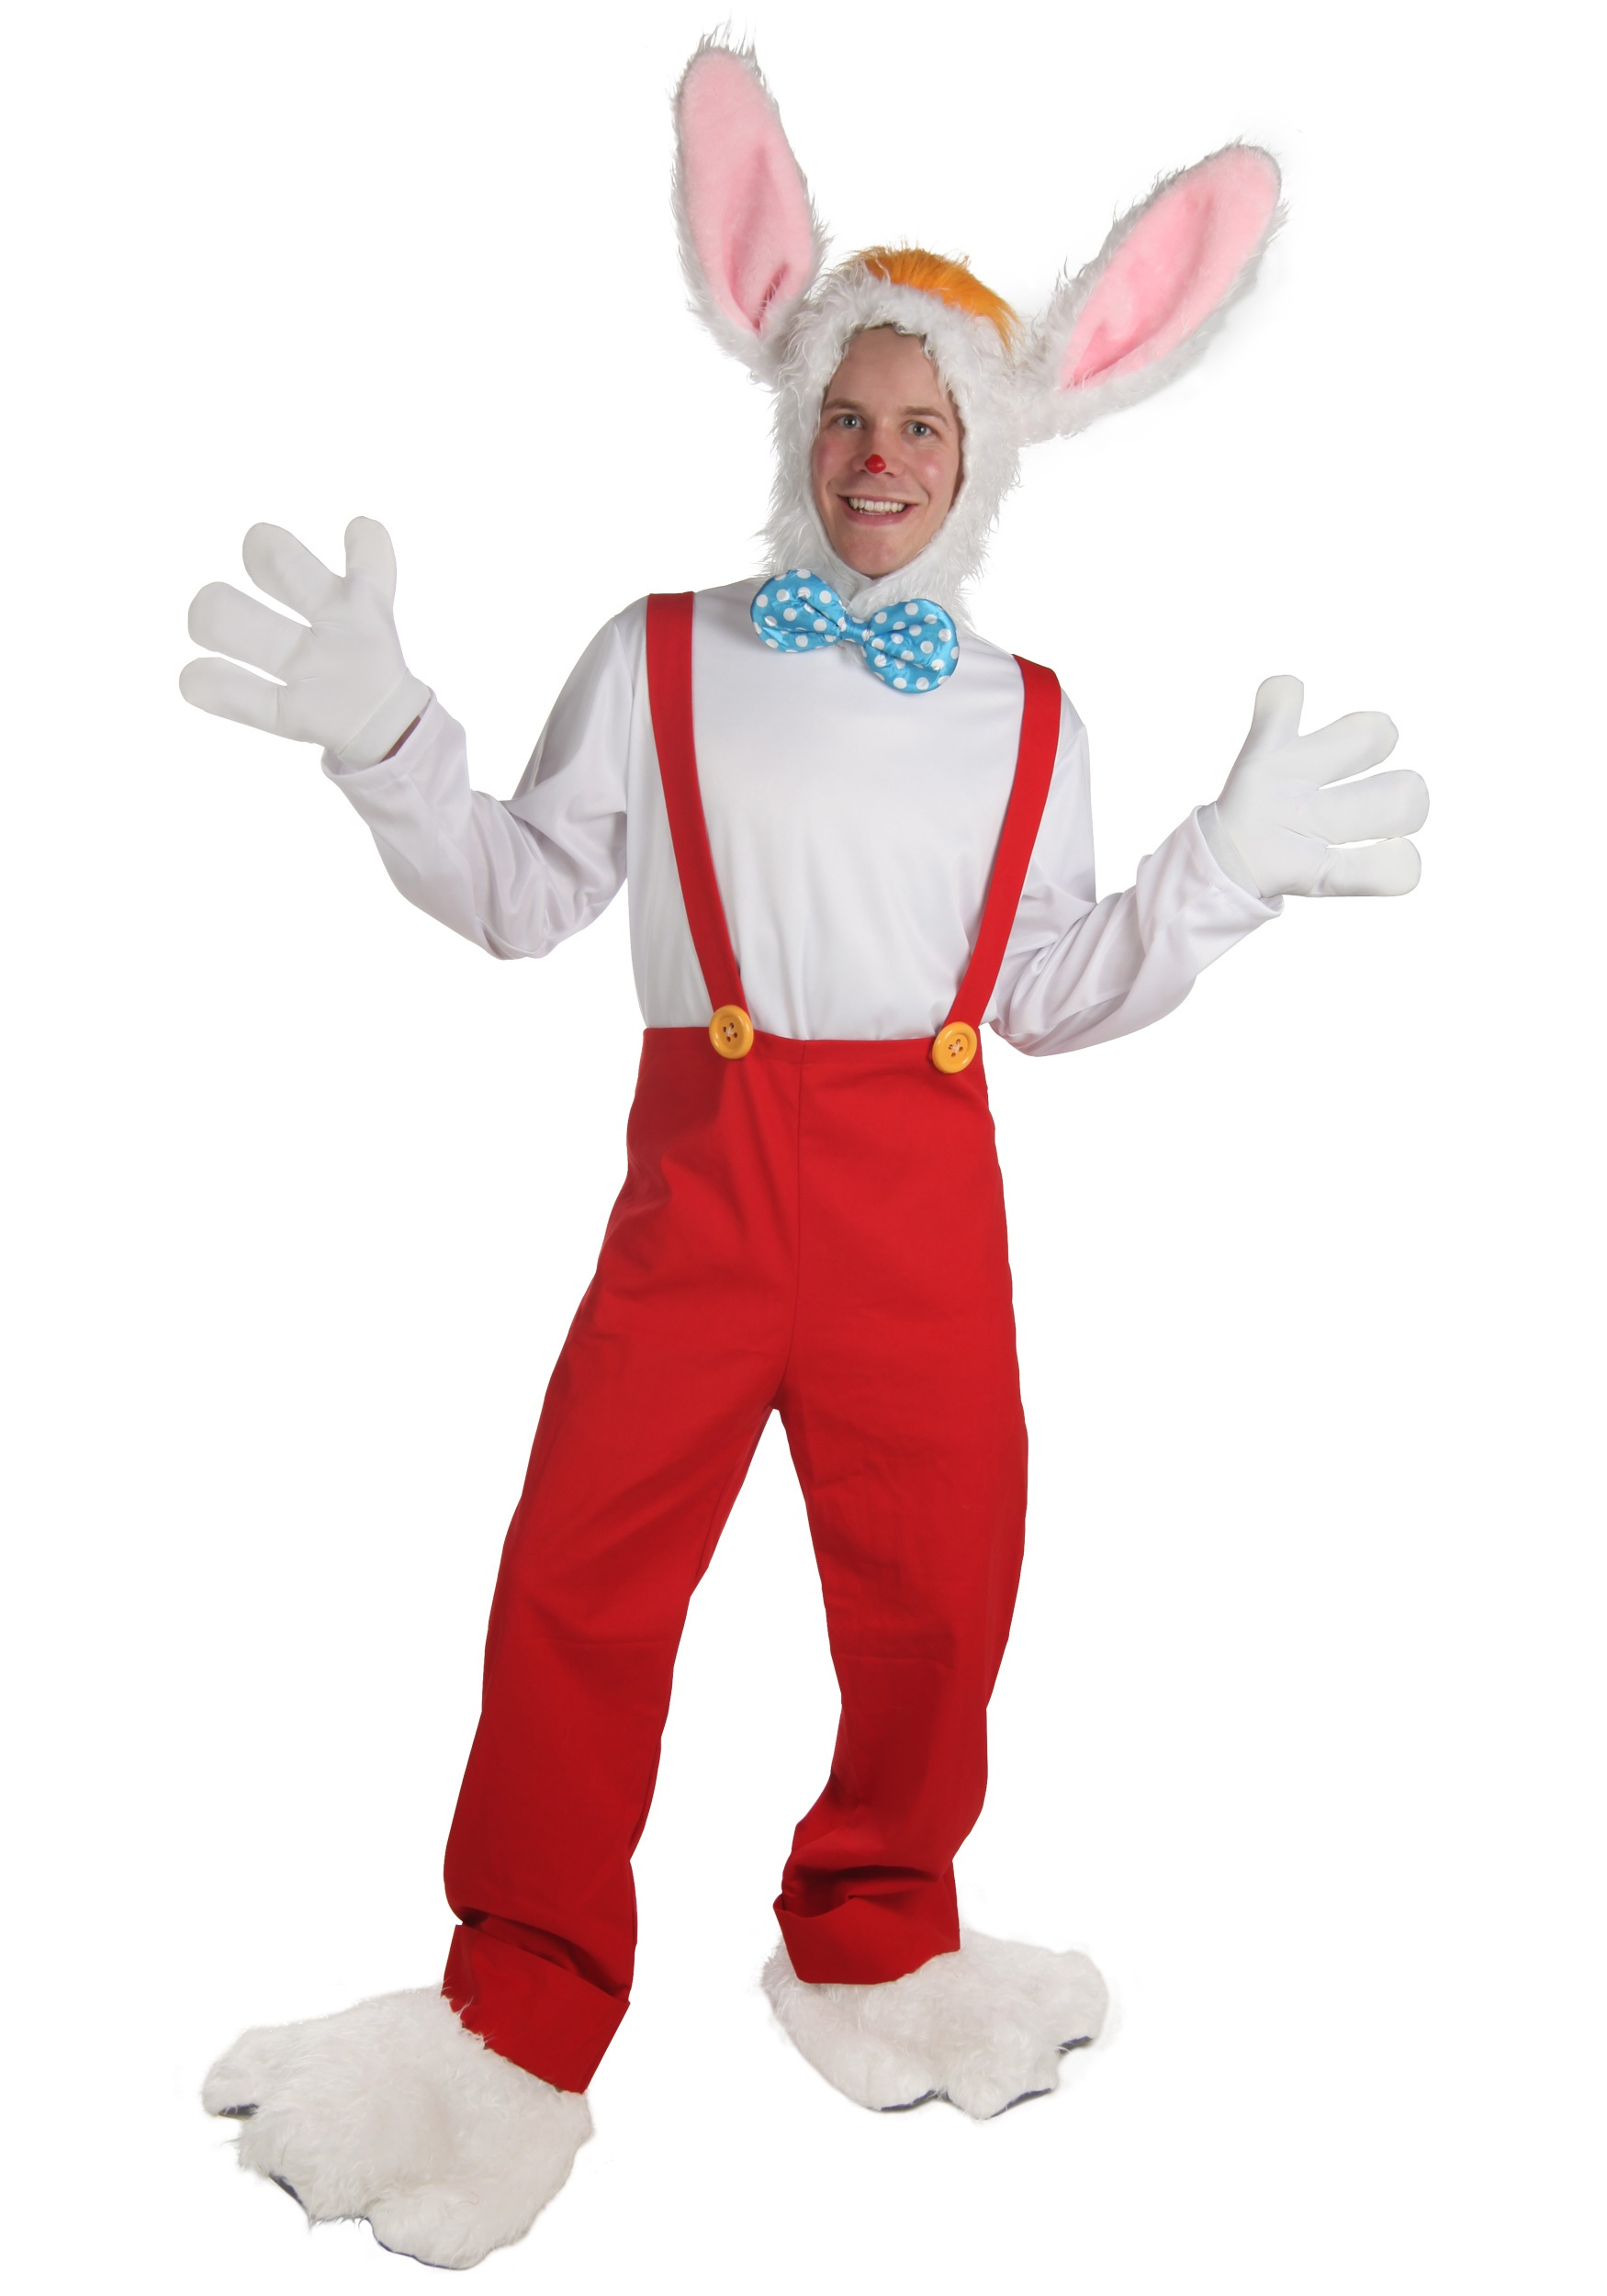 plus size cartoon rabbit costume - halloween costume ideas 2018